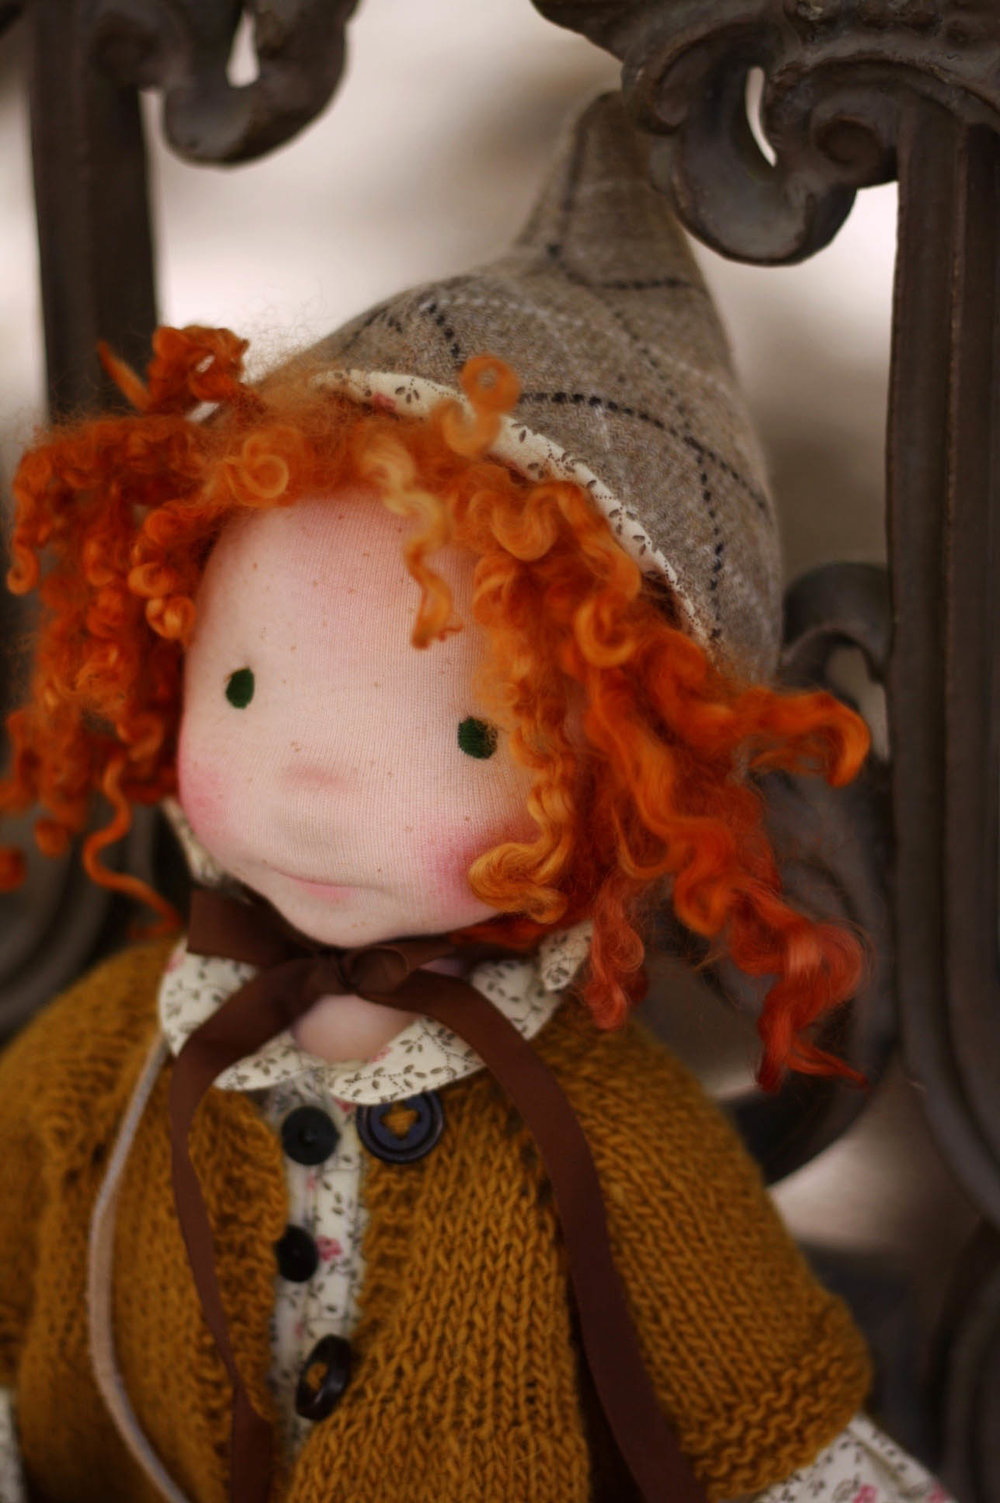 Our fall manifesto, via fig and me. (This is Hestia, a lovely red-headed cloth doll).